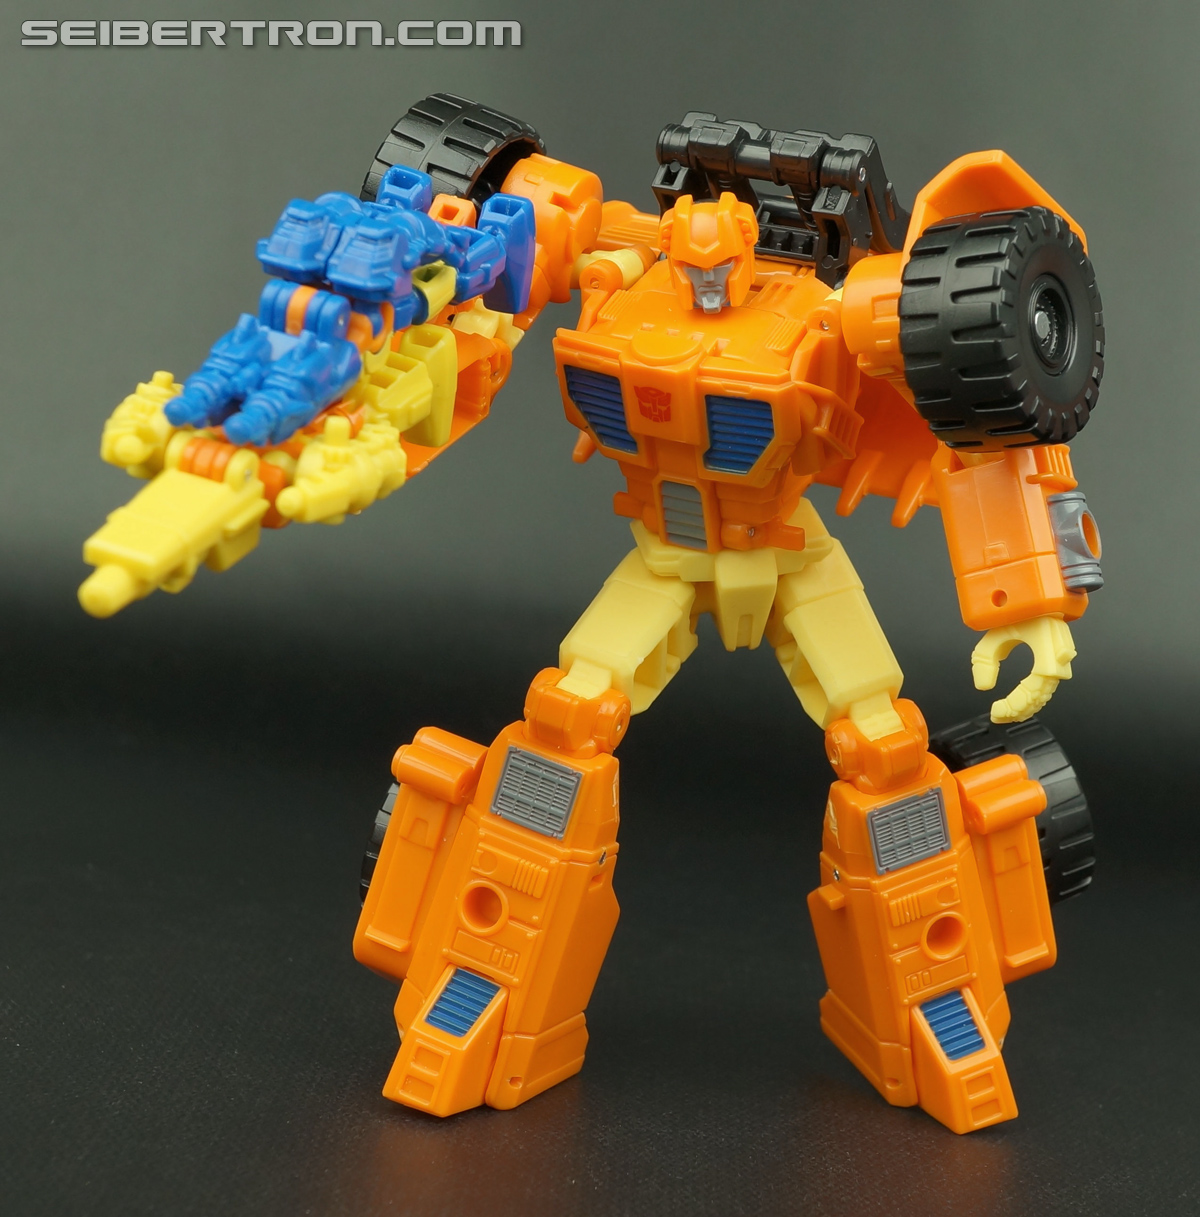 Transformers Generations Caliburst (Tracer) (Image #56 of 63)